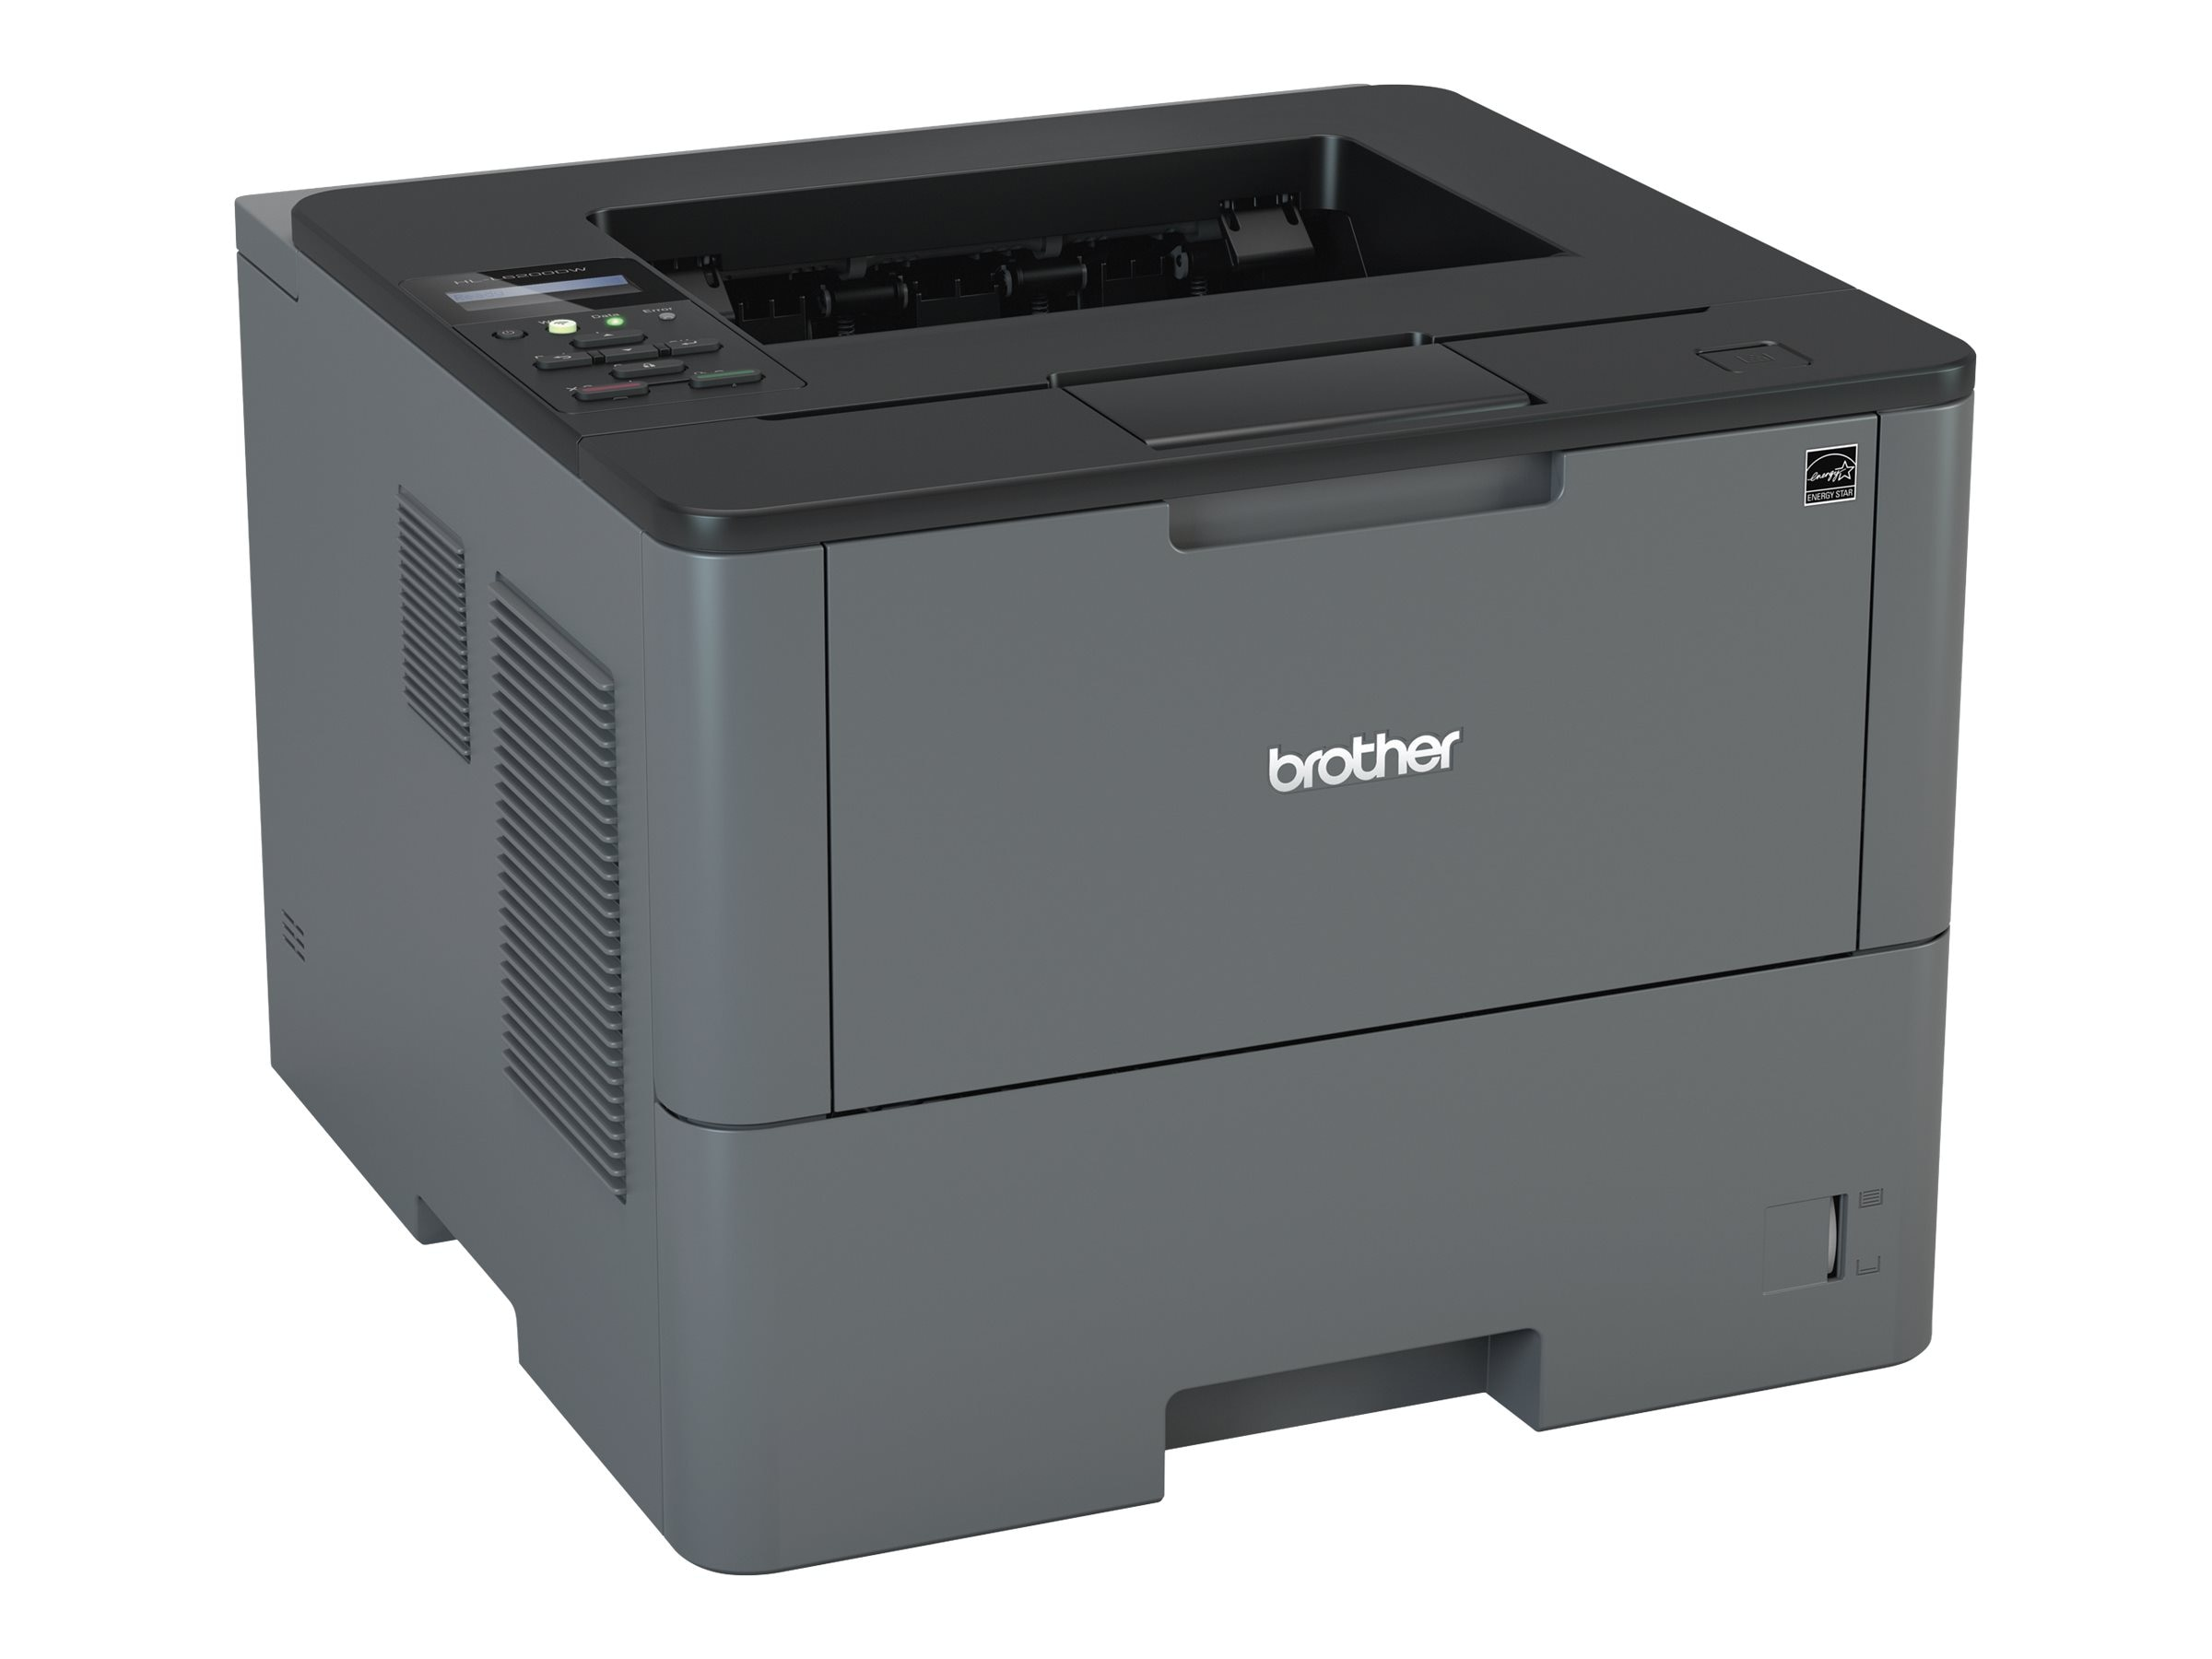 Brother HL-L6200DW Image 3